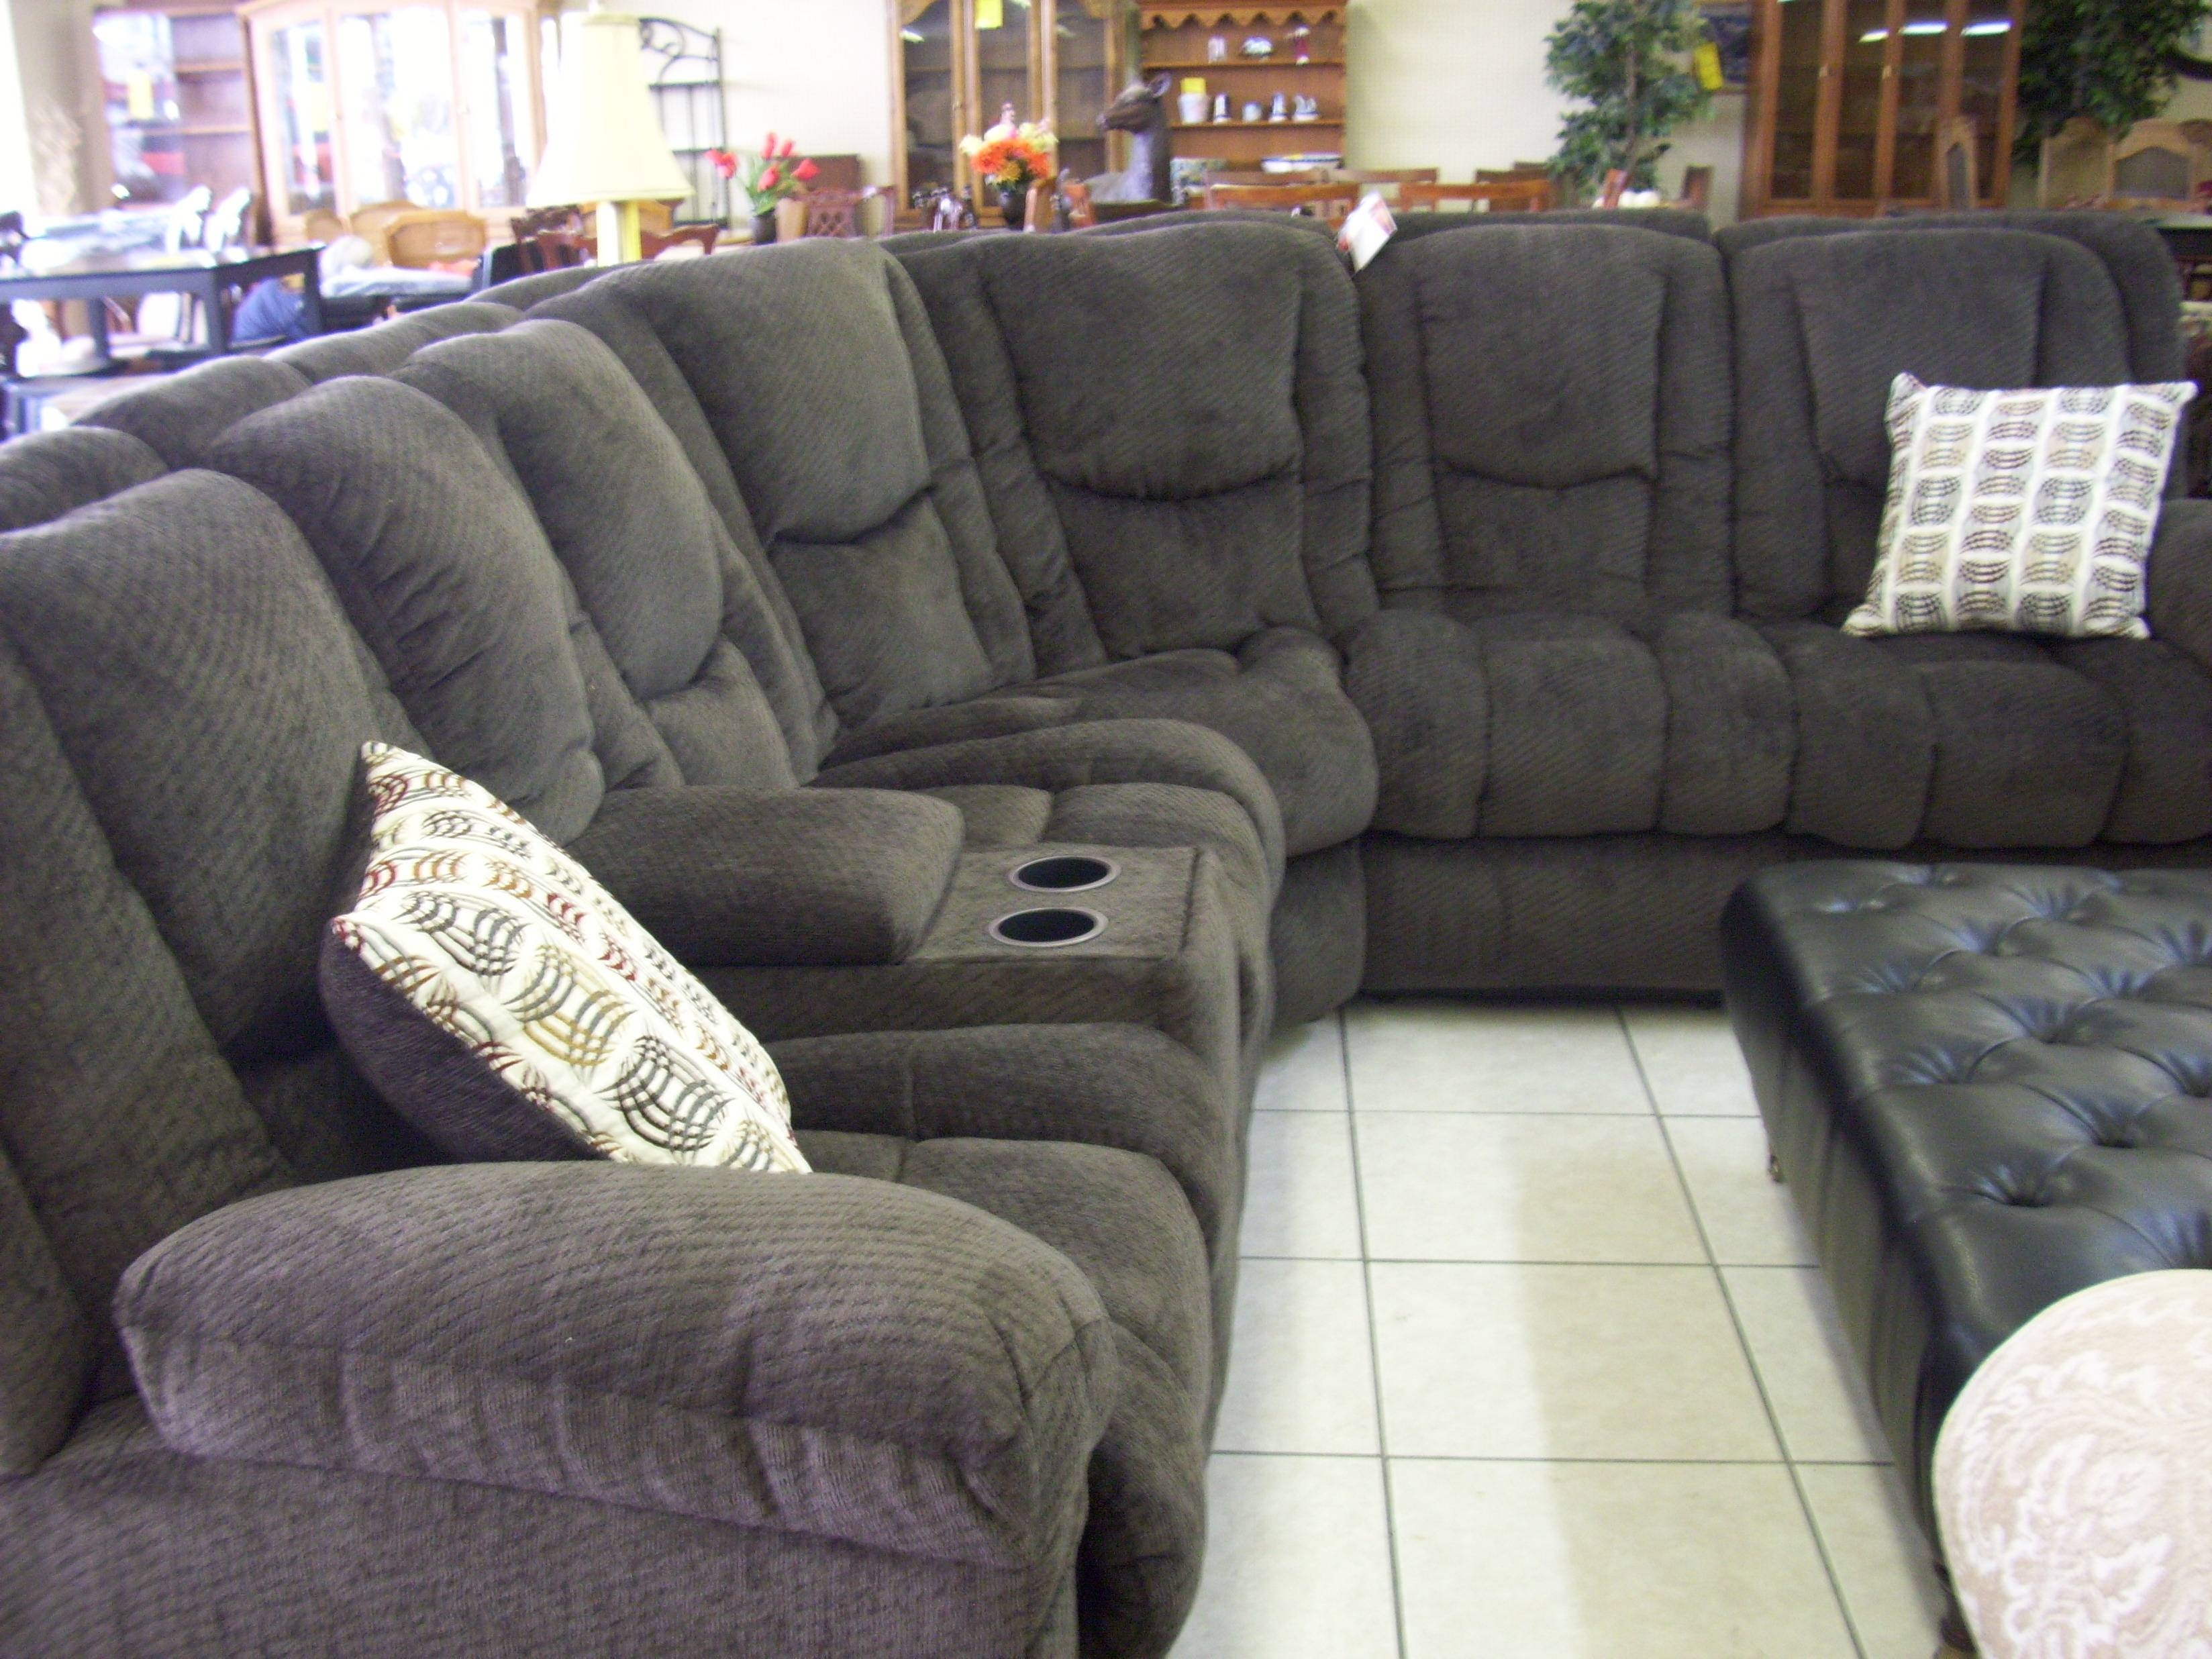 Furniture: Fantastic Sectional Couches With Recliners For Your throughout Slipcovers for Sectional Sofas With Recliners (Image 7 of 30)